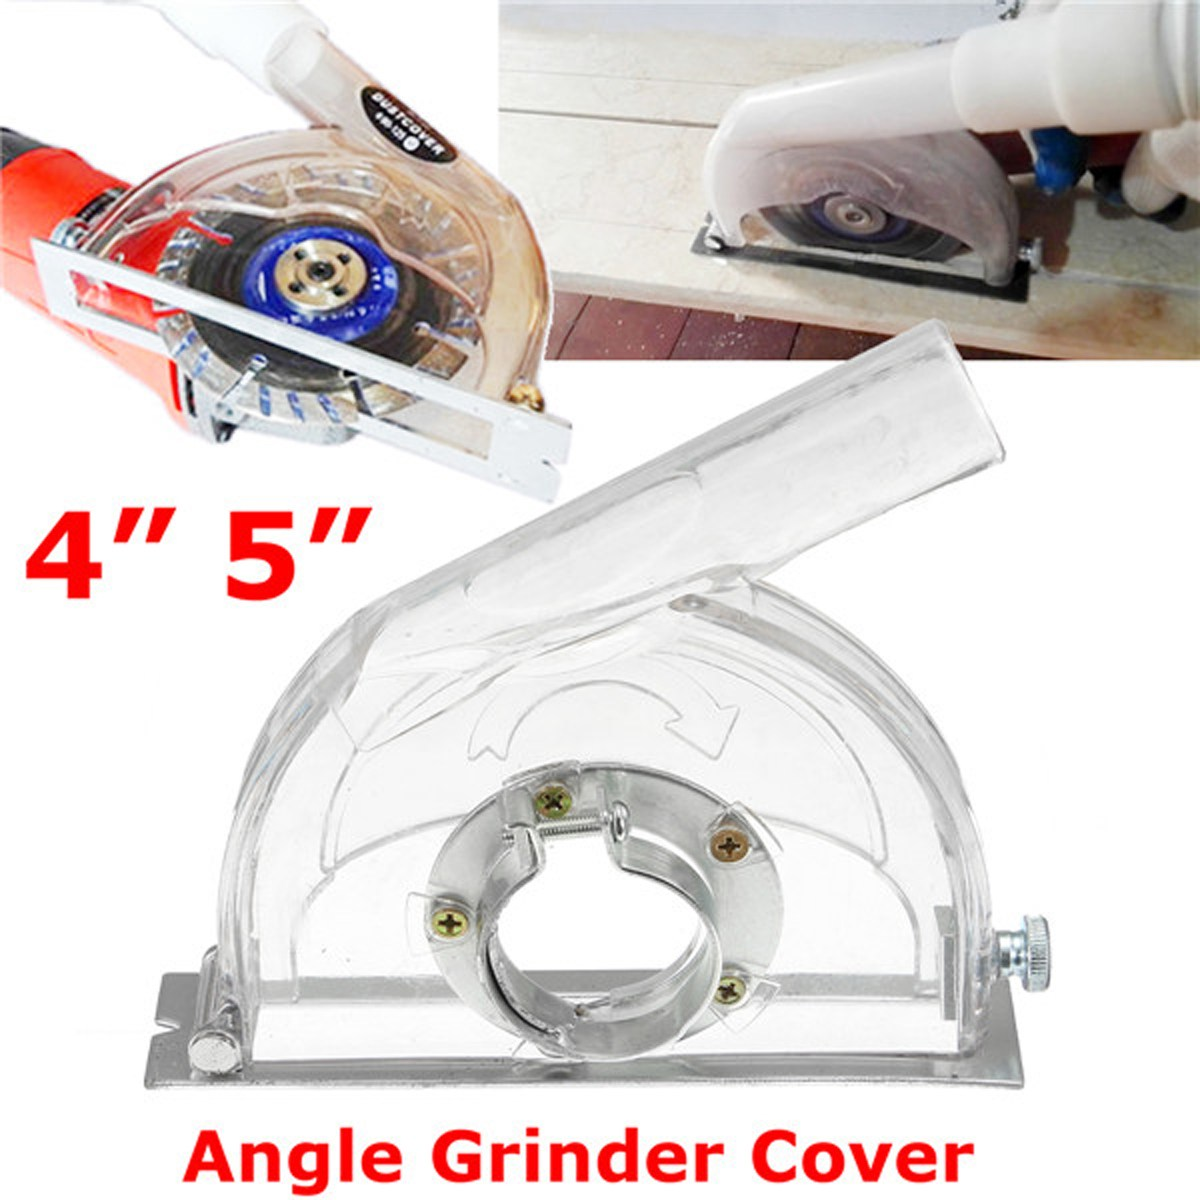 цена на Convertible Transparent Grinding Dust Cover For 45 Angle Grinder & 3/4/5 Saw Blades For Hand Grinder Power Tool Accessories